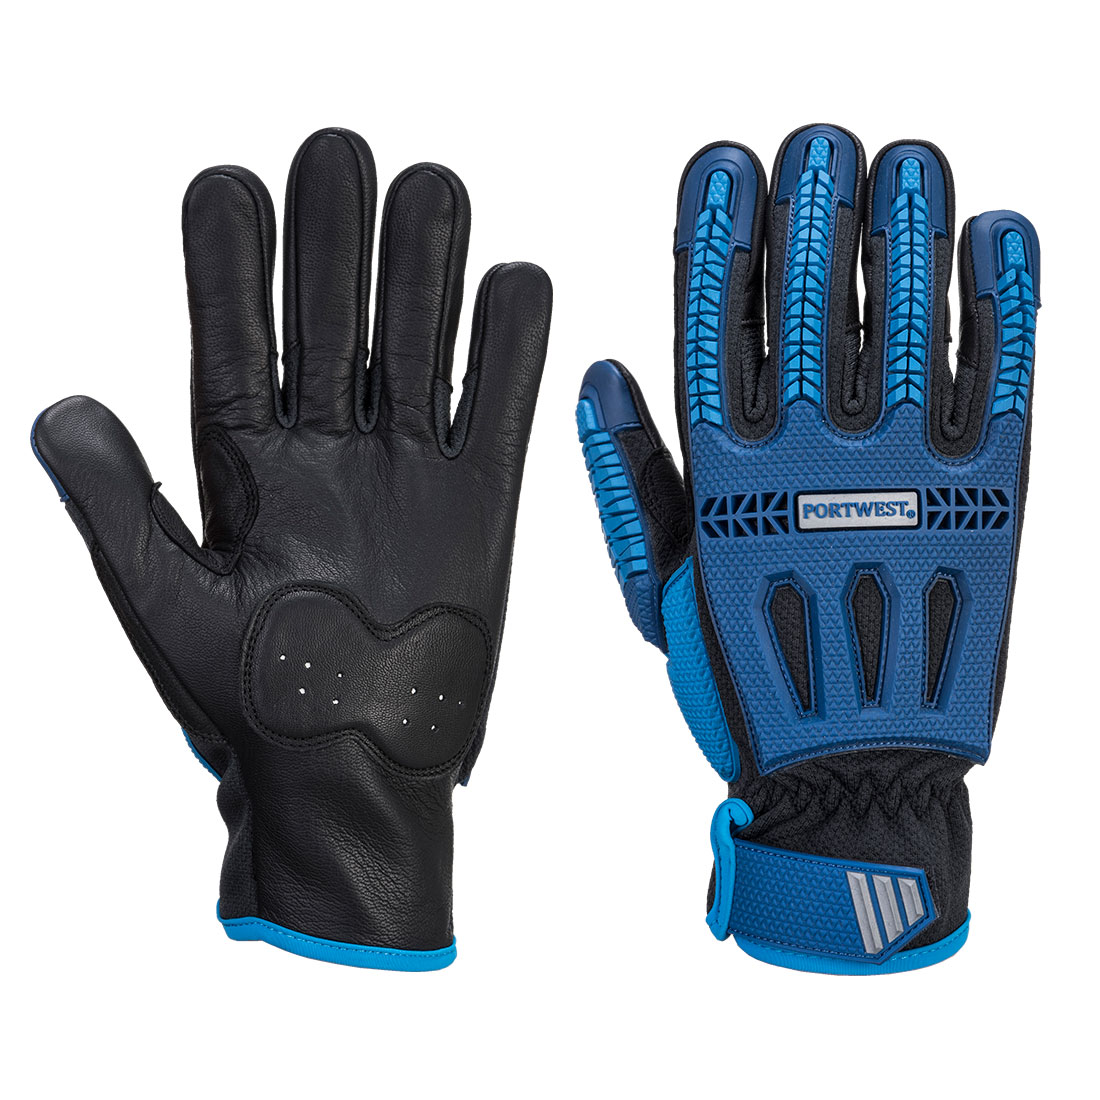 HAND PROTECTION, Anti Impact Gloves